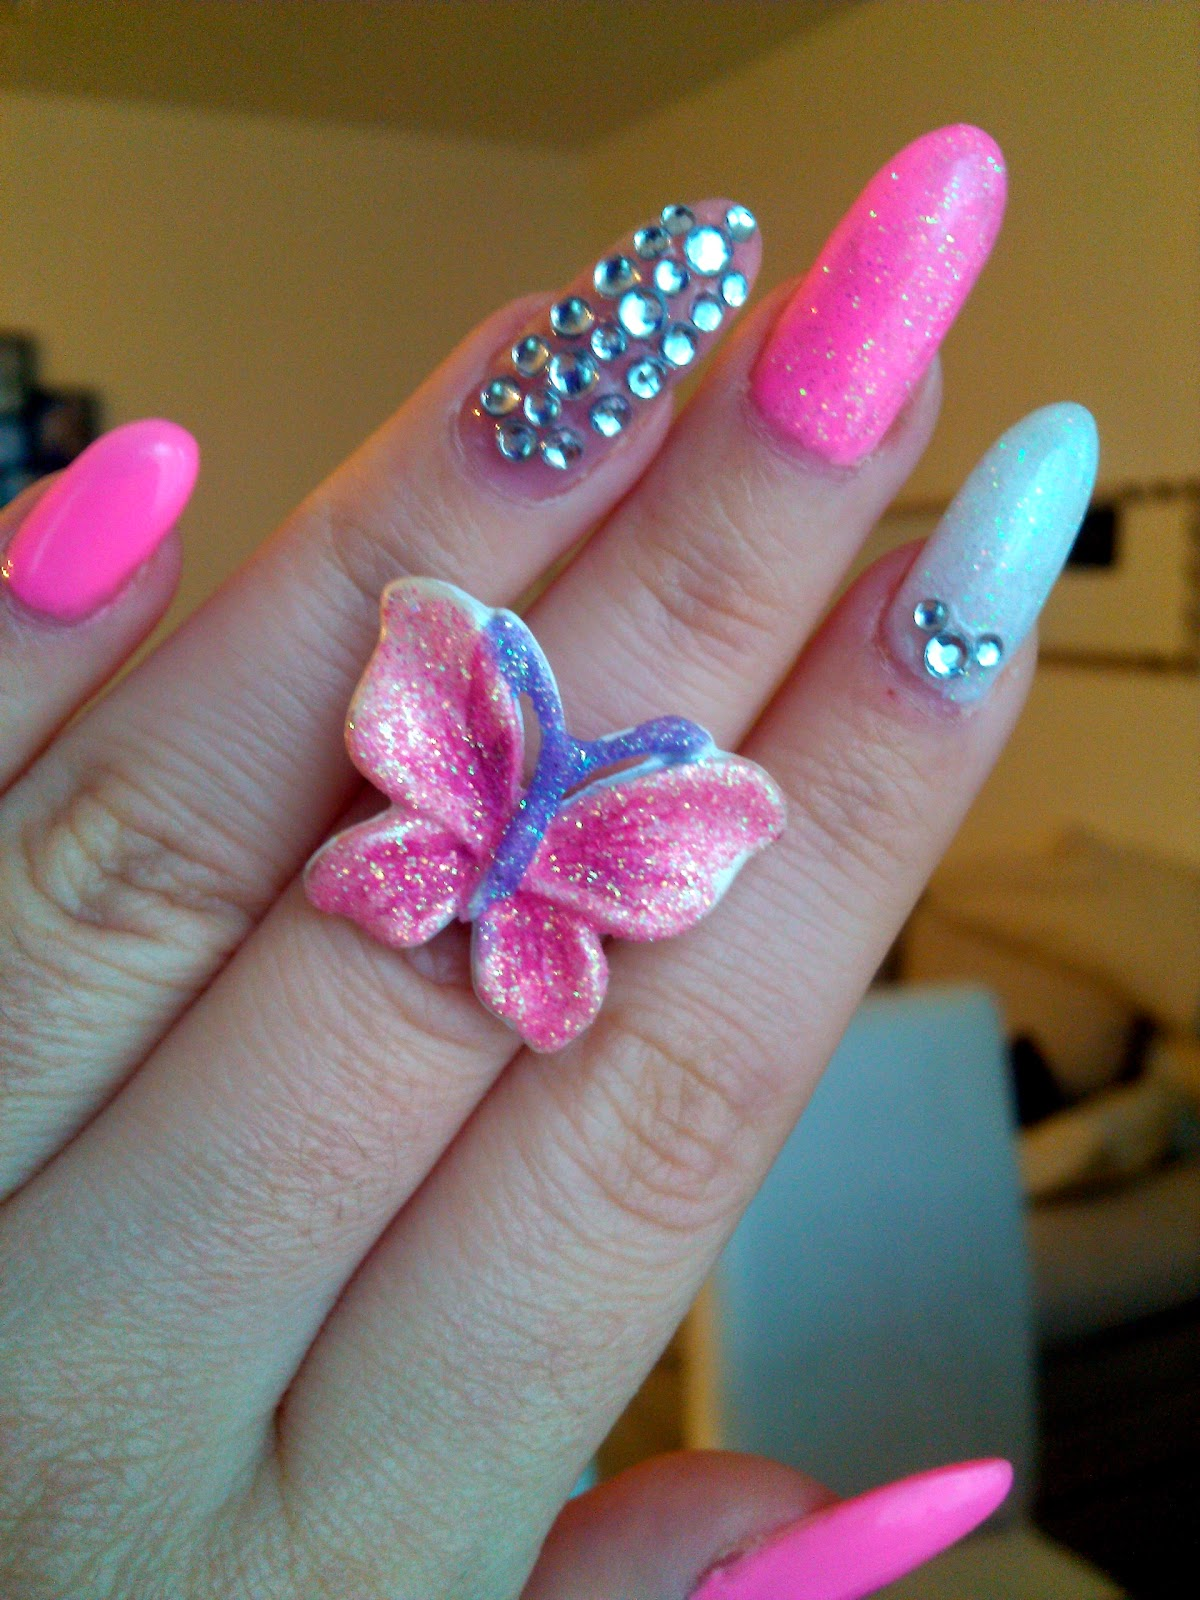 sparkly stiletto nails, stiletto nails, stiletto nails with rhinestones, white stiletto nails, pink stiletto nails, pink butterfly ring